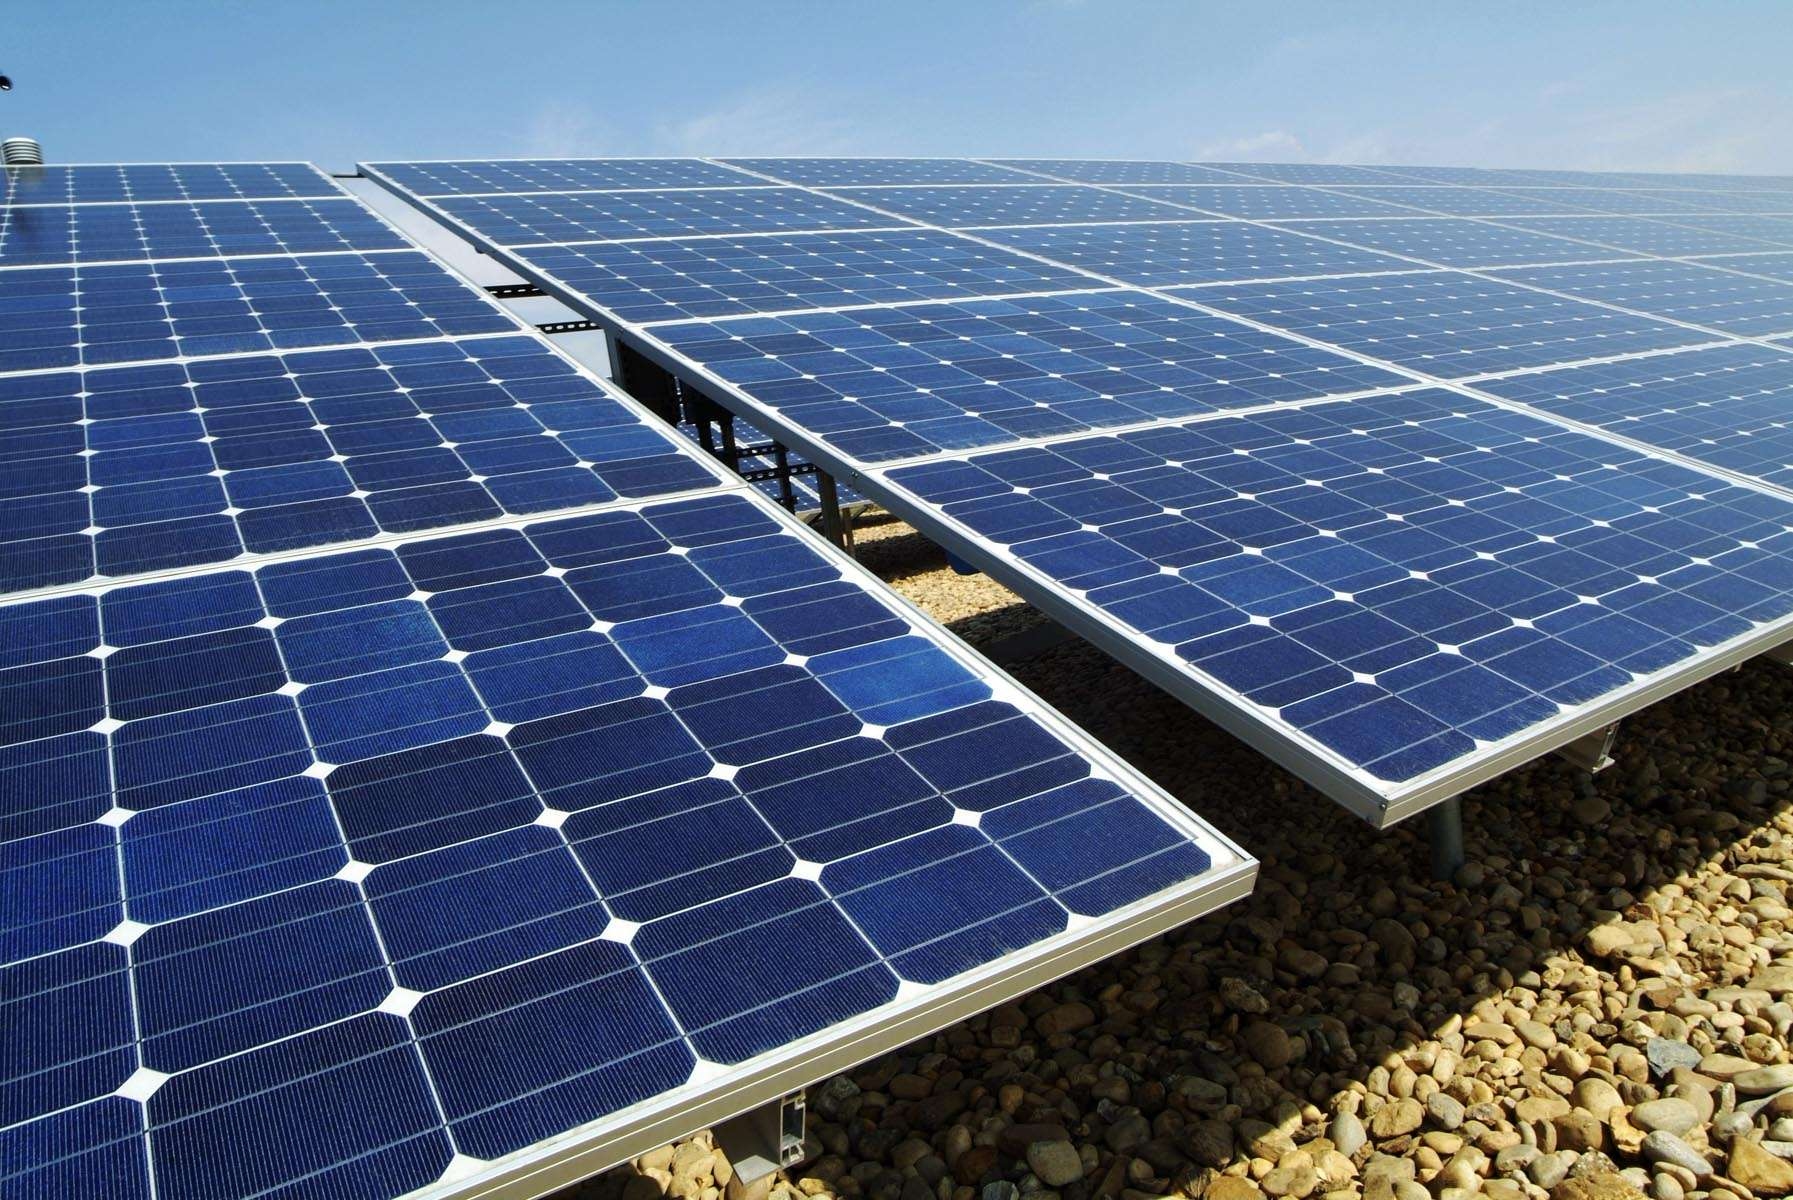 State-of-the-Art Solar Plant Coming to Westmoreland